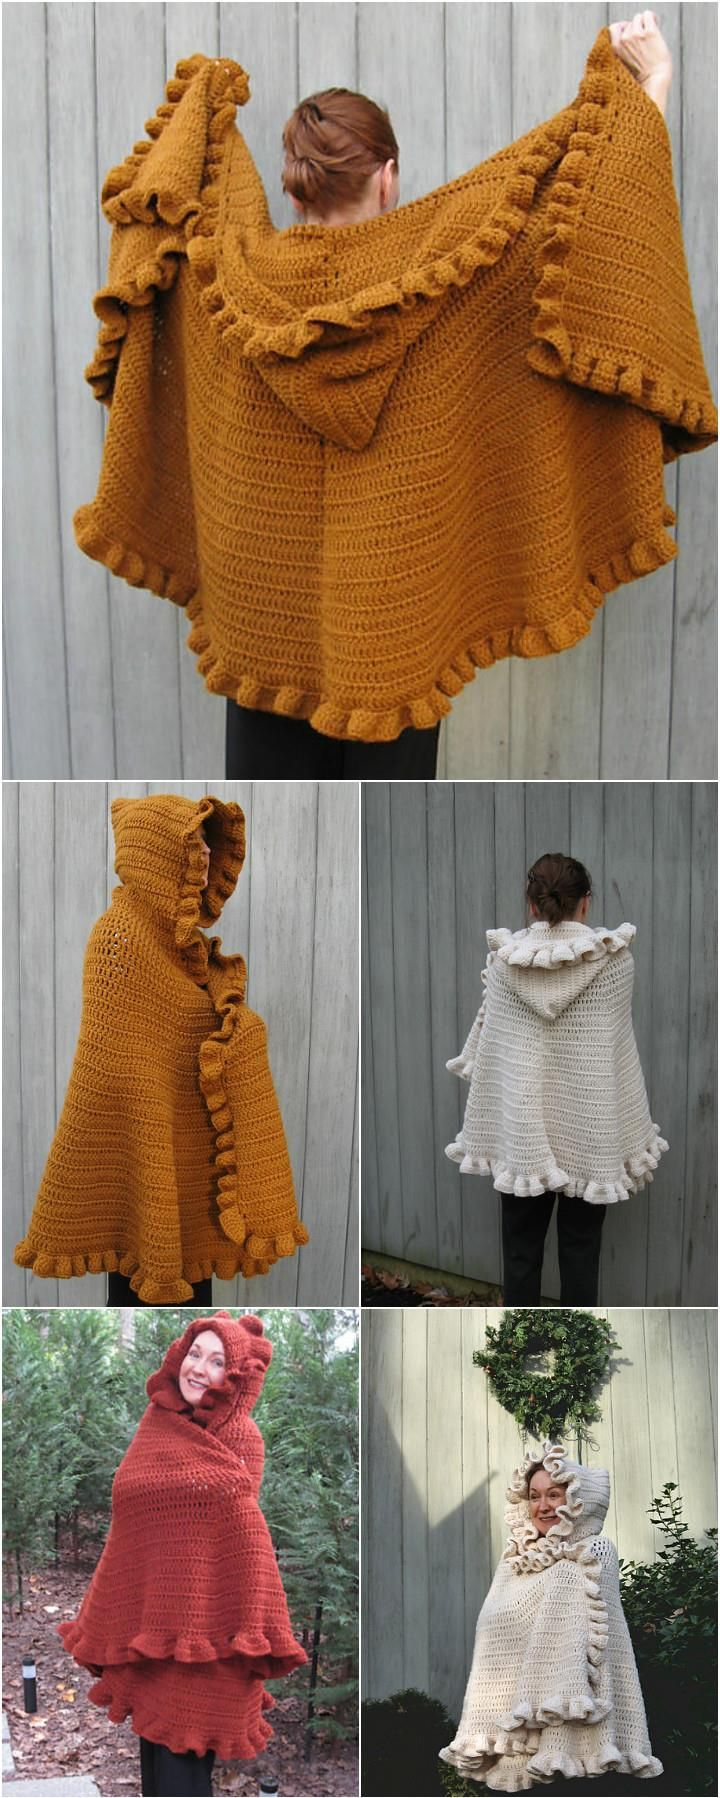 10 FREE Crochet Shawl Patterns for Women\'s | Crochet, Shawl and ...